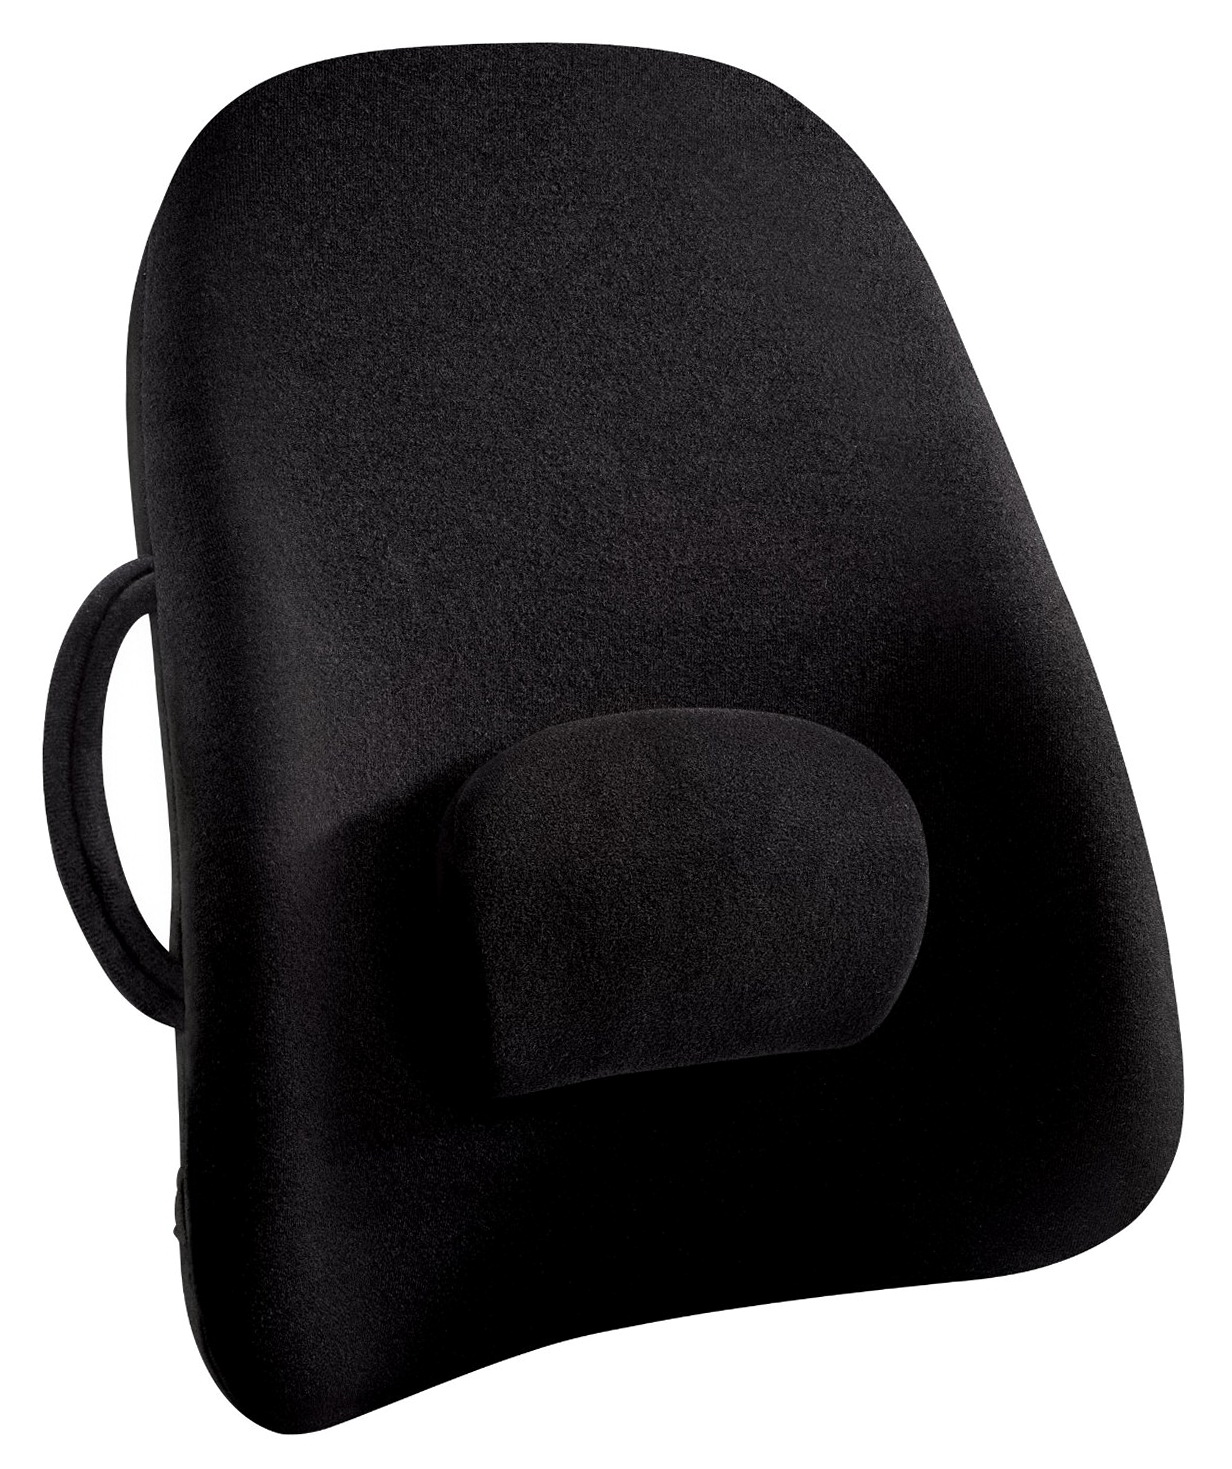 Best Lumbar Support Cushion Reviews